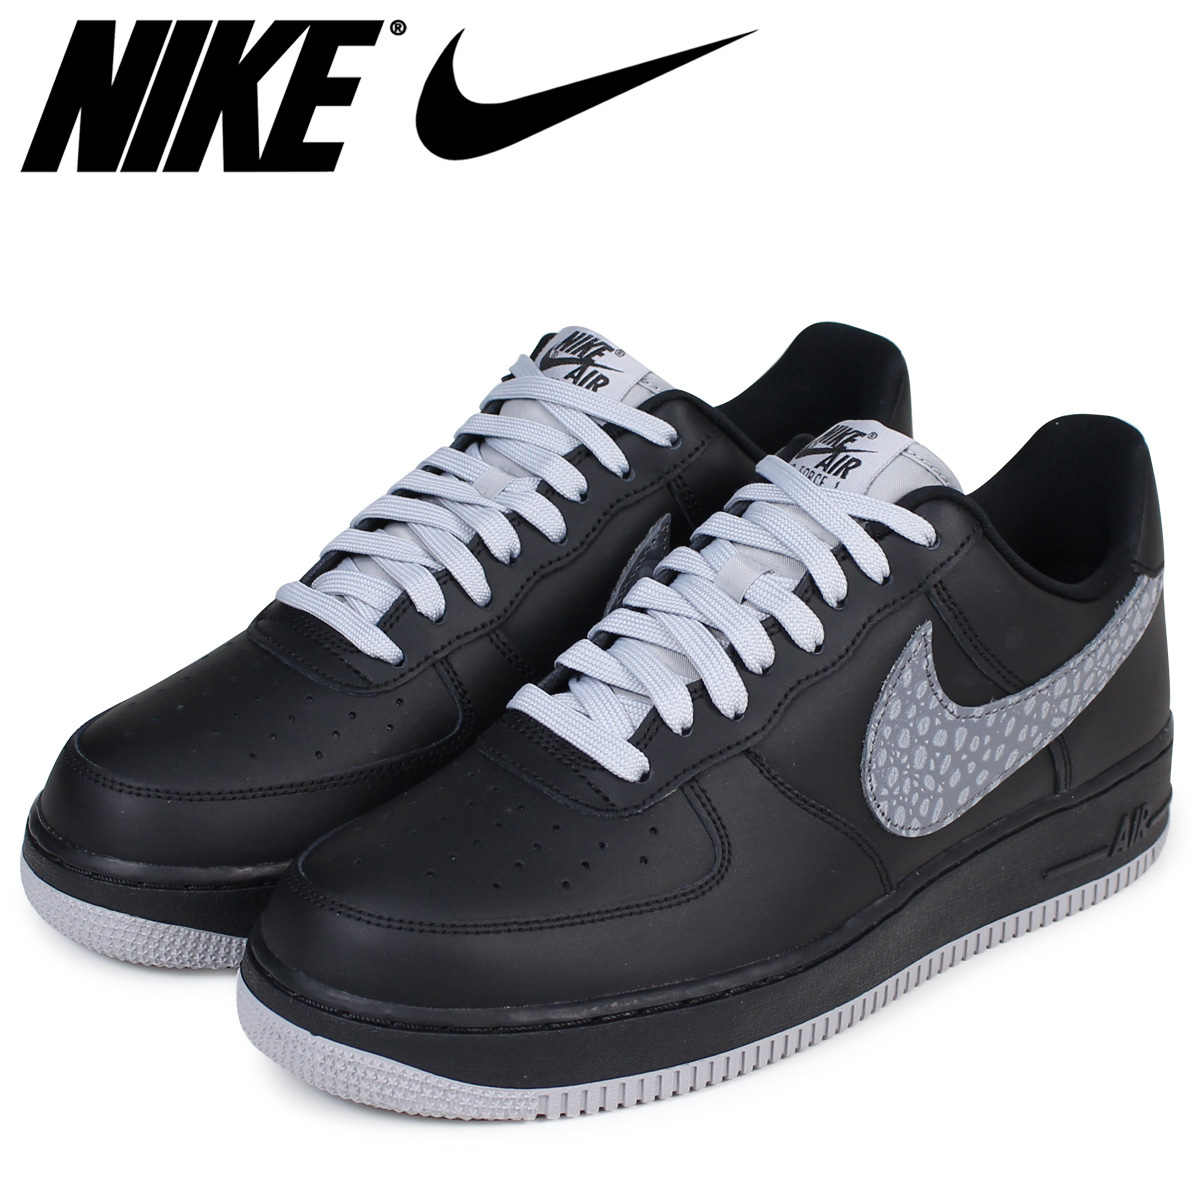 detailed look 9510f 8e508 NIKE Nike air force 1 sneakers AIR FORCE 1 07 LV8 823,511-012 men's shoes  ...